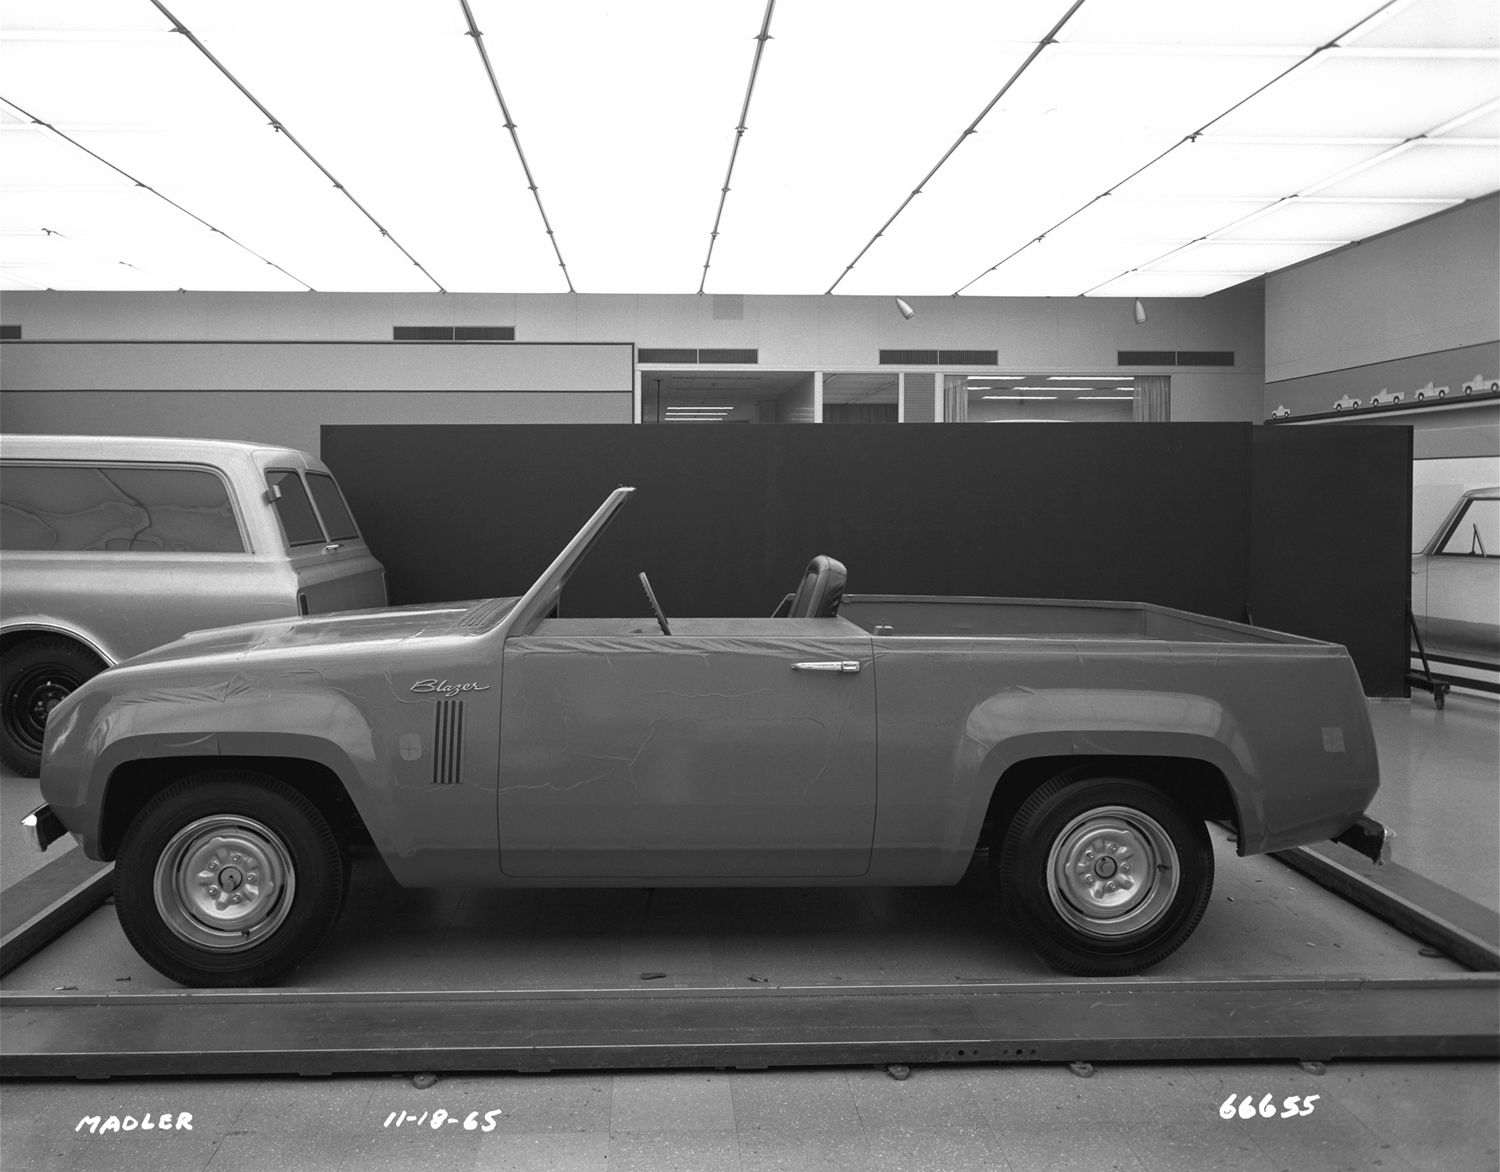 1967 Chevrolet Blazer concept design no roof side profile